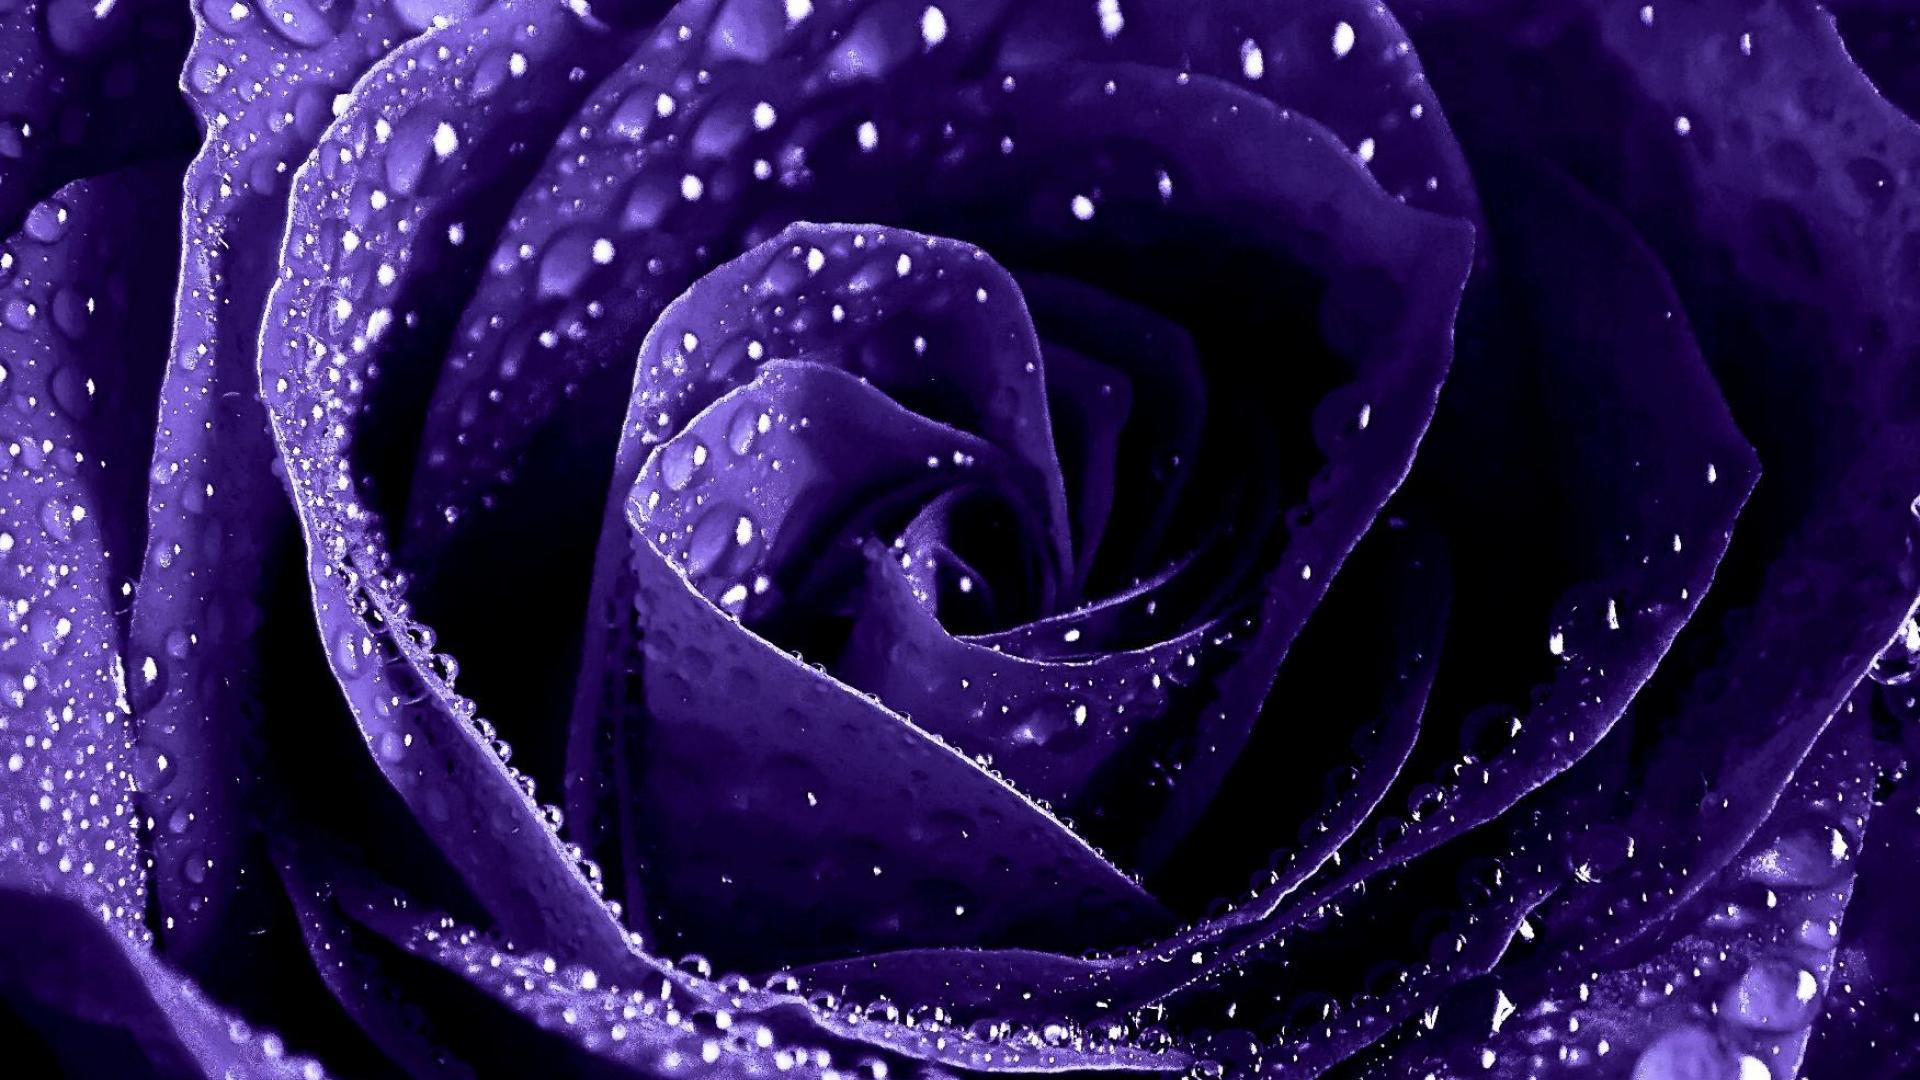 Purple Roses Wallpaper 29513 1920x1080 Px Hdwallsource Com